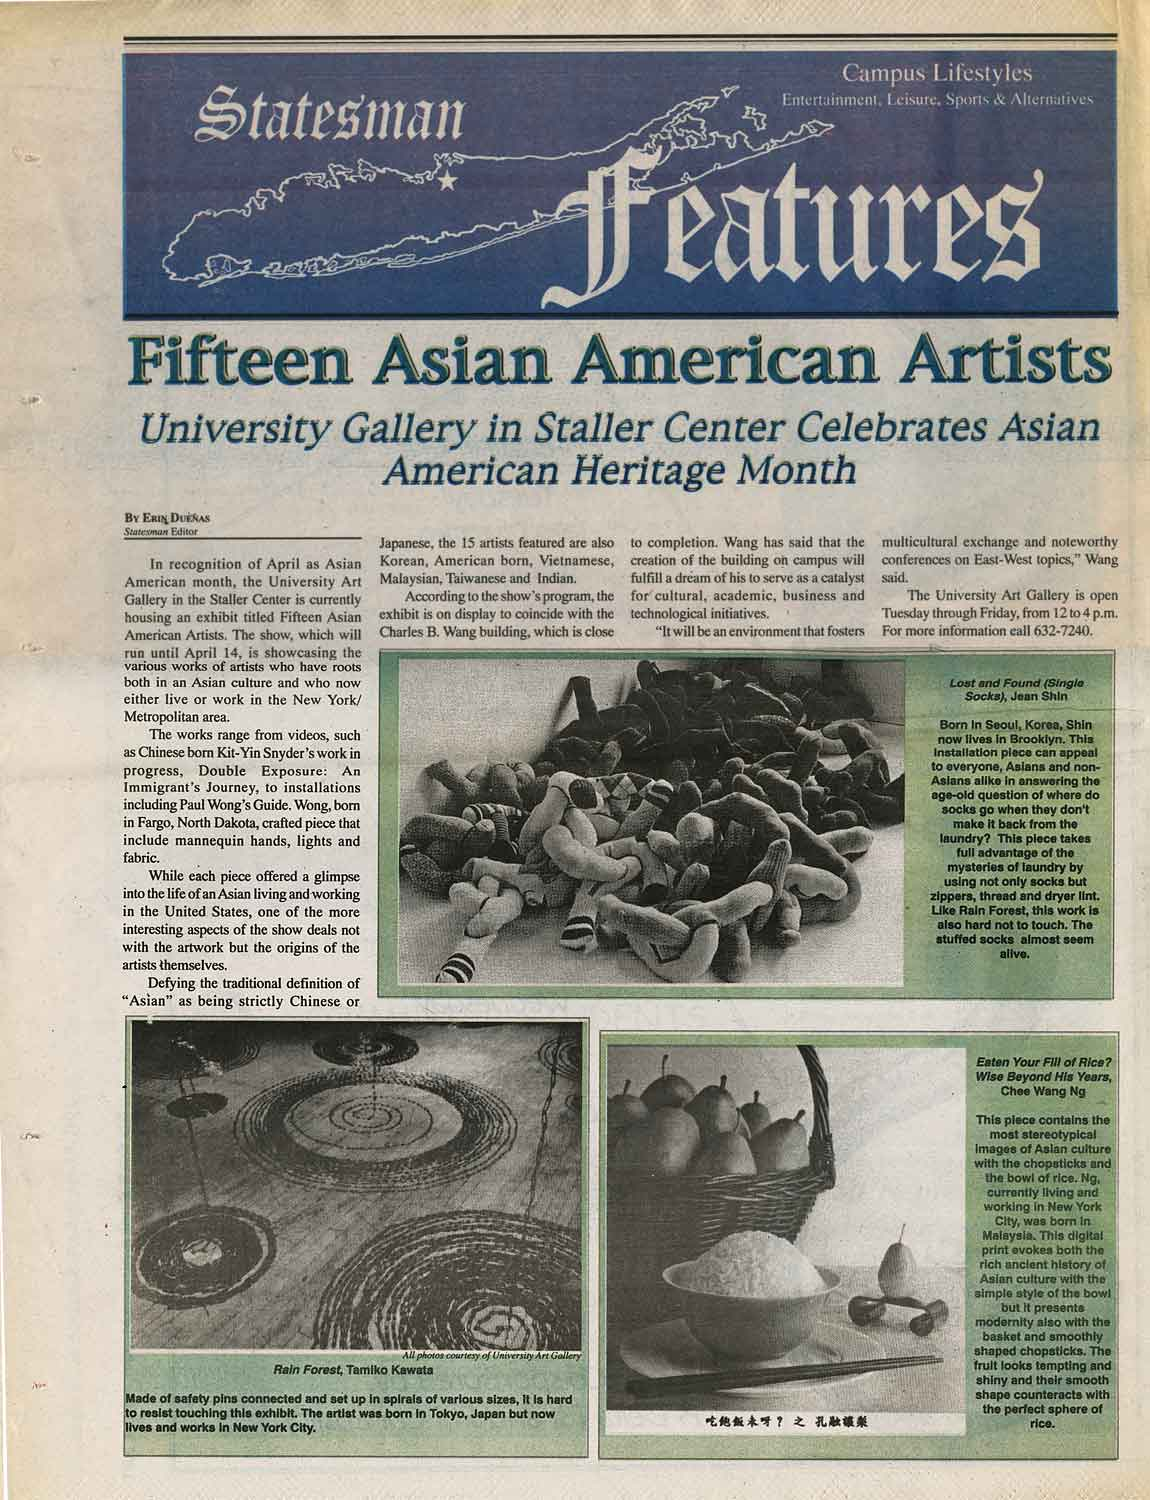 Fifteen Asian American Artists, article